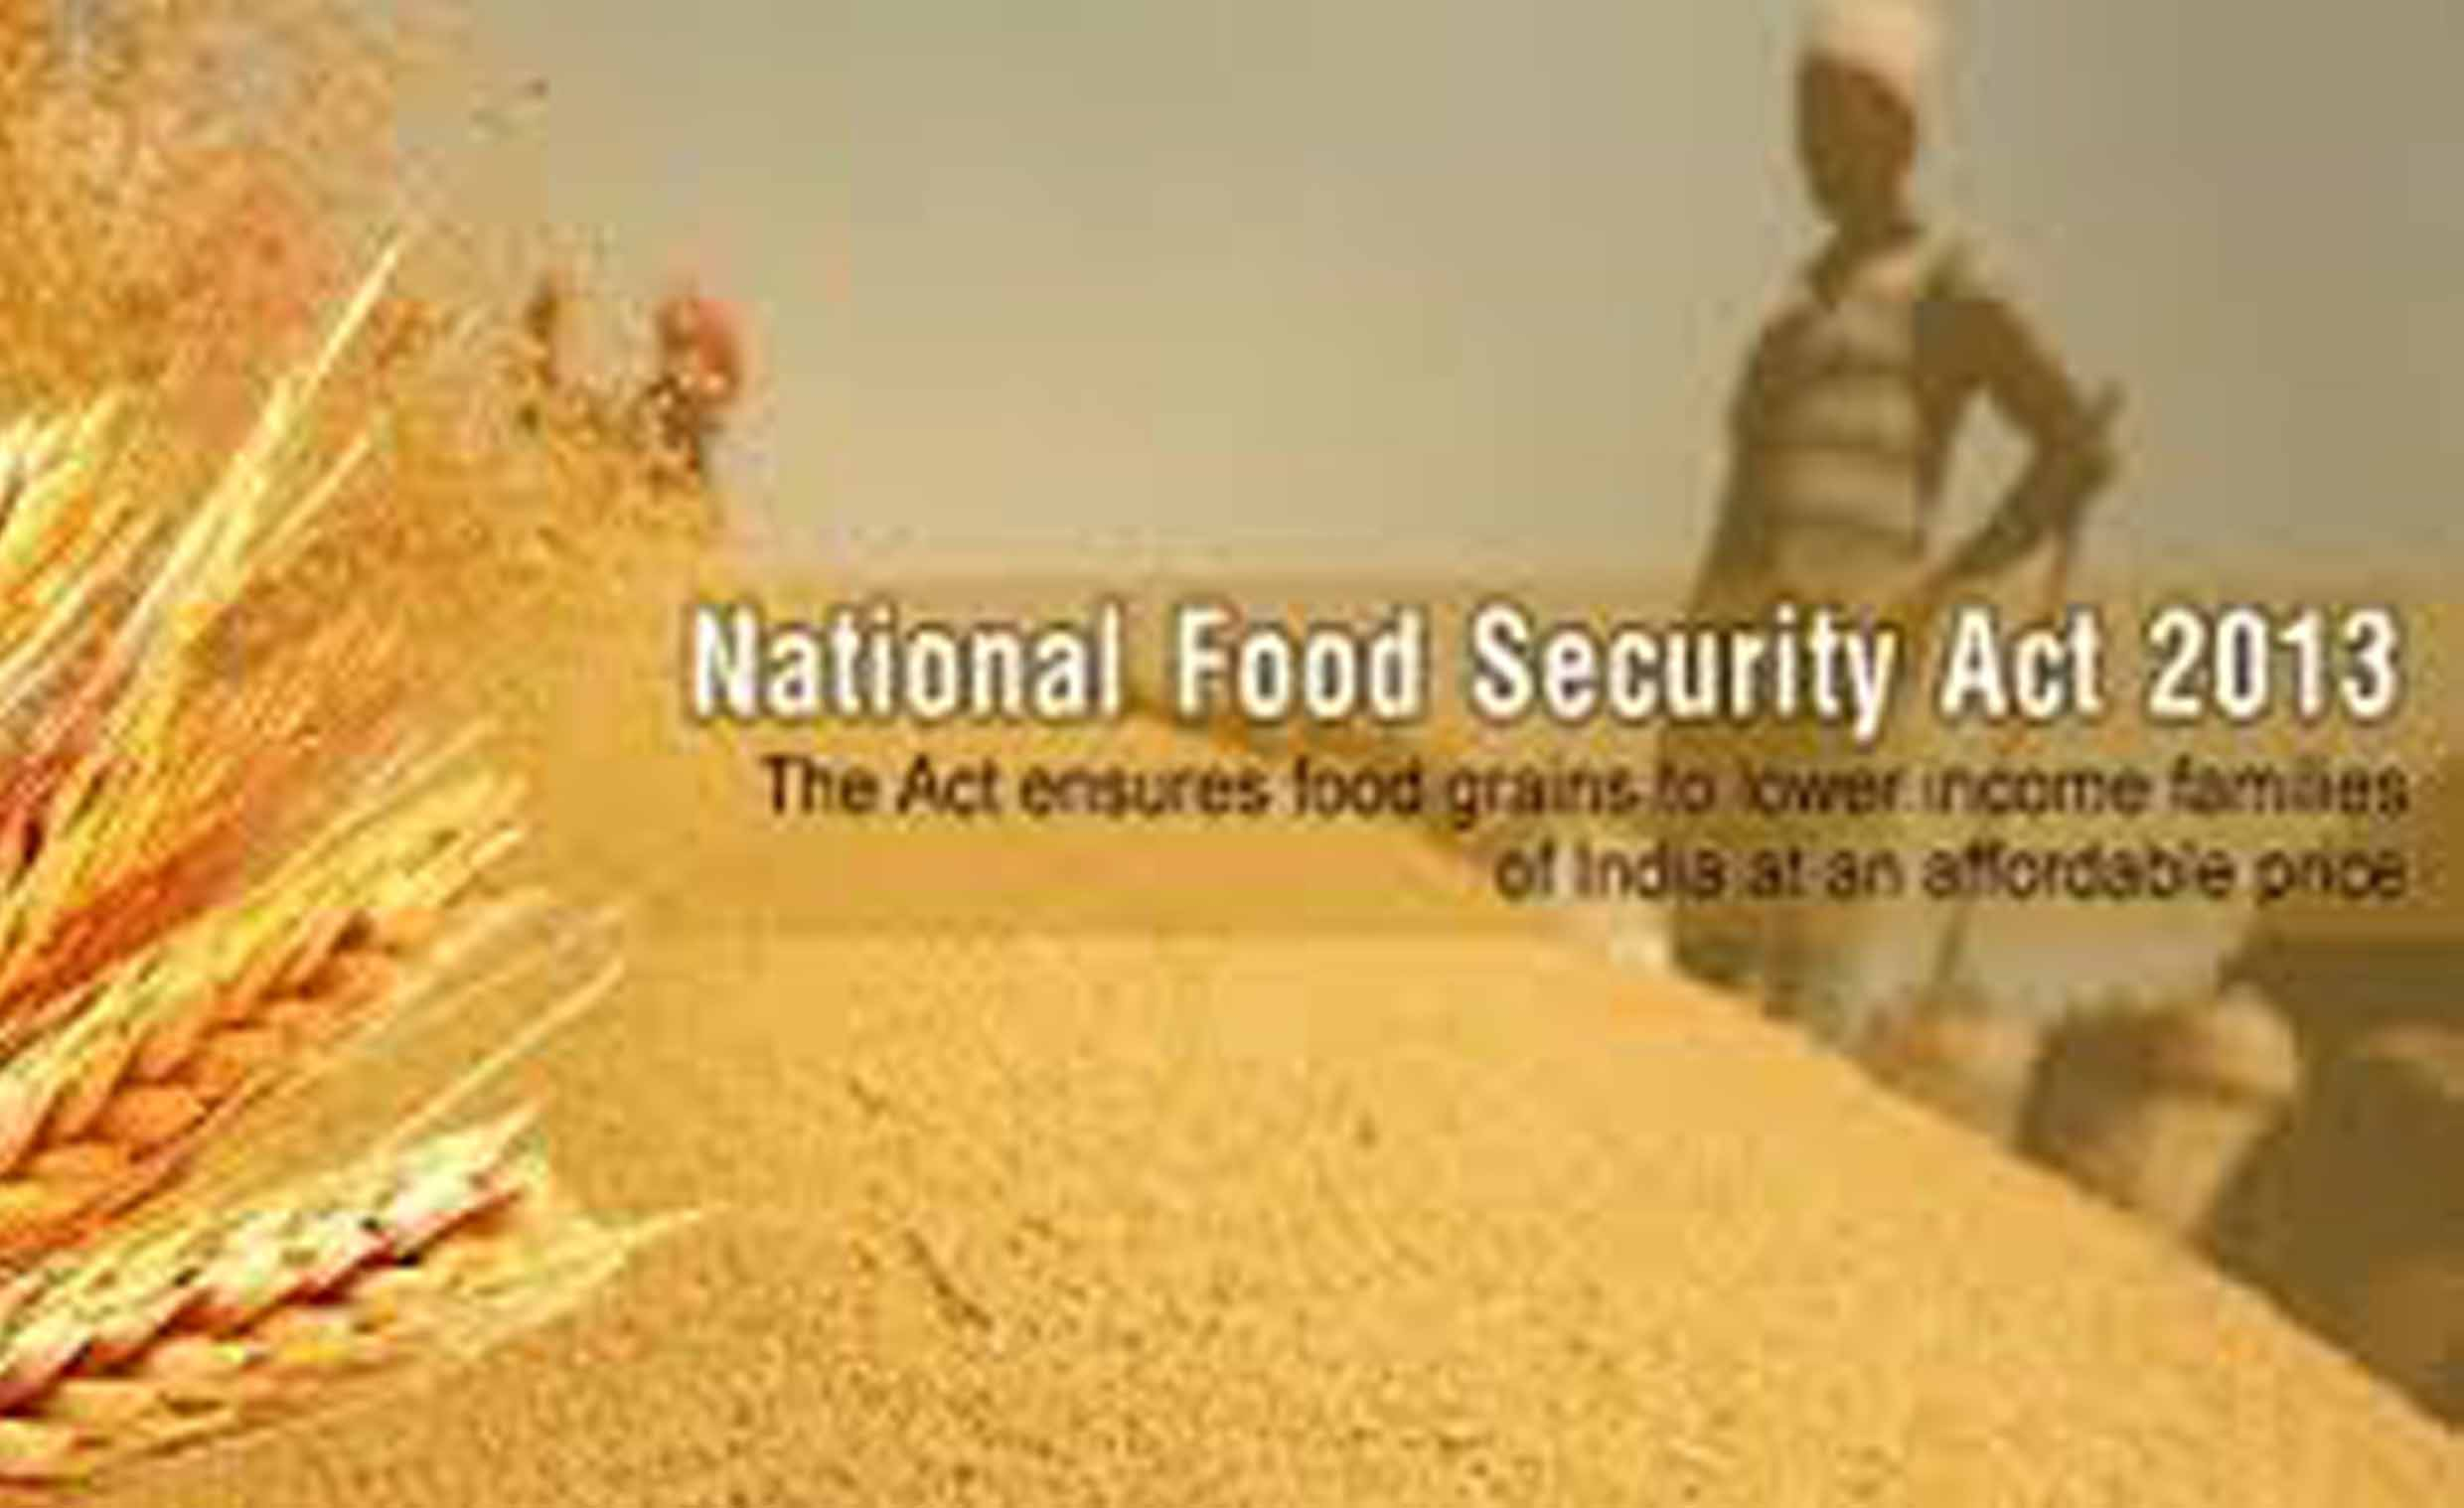 national food security bill 2013 introduced 03092013 the national food security bill, 2013 passed by the parliament monday gives right to subsidised food grain to 67 percent of india's 12 billion people and.